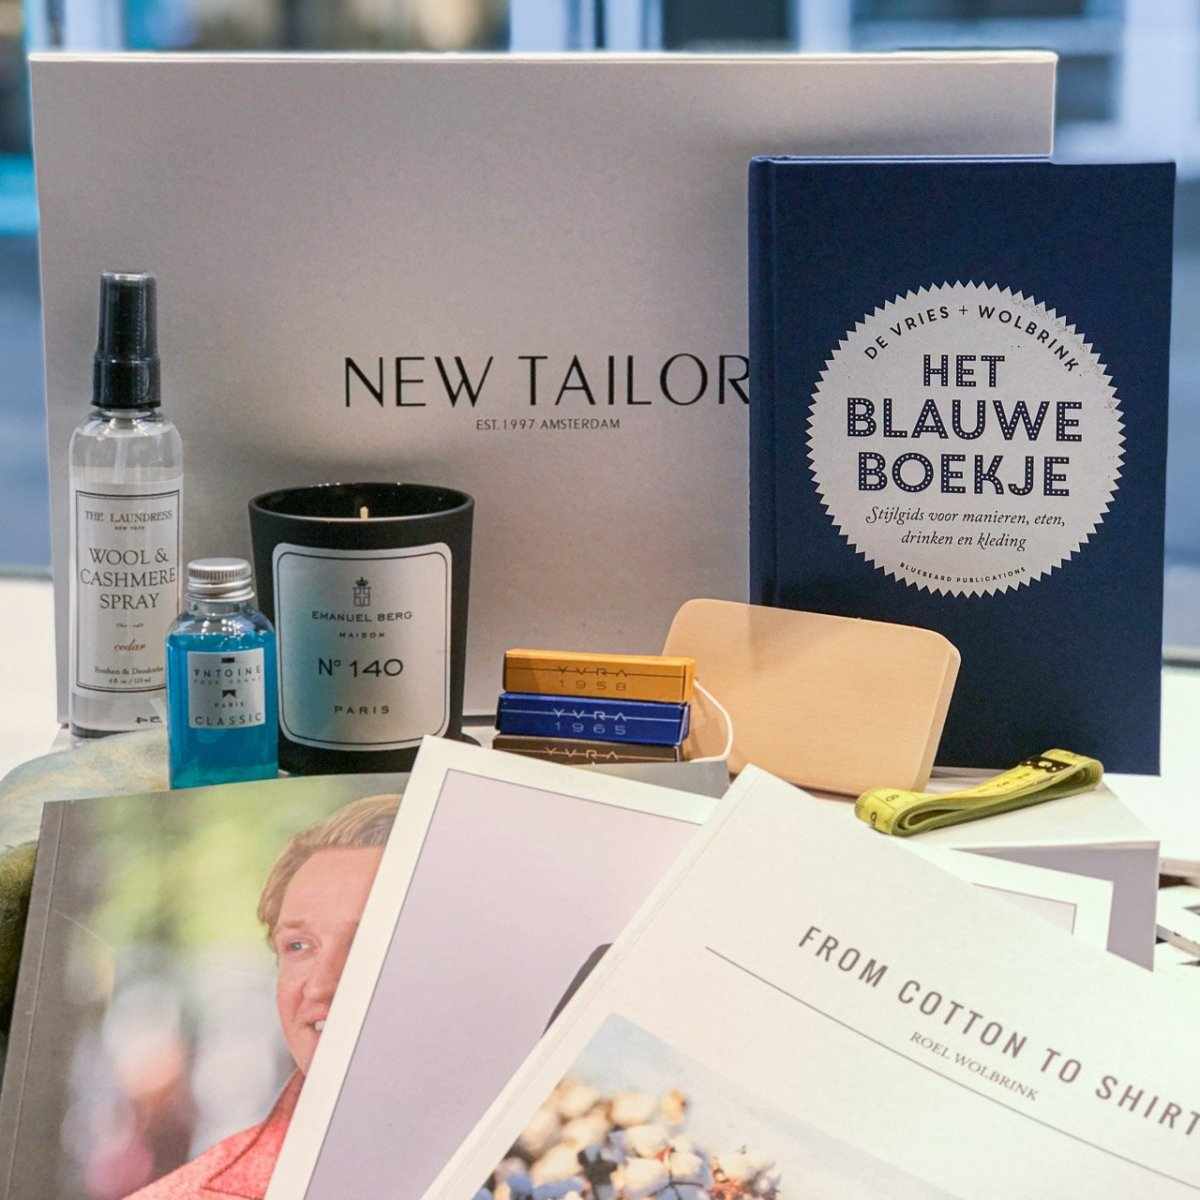 NEW TAILOR - The Gift Box, Cadeaubon | NEW TAILOR Webshop